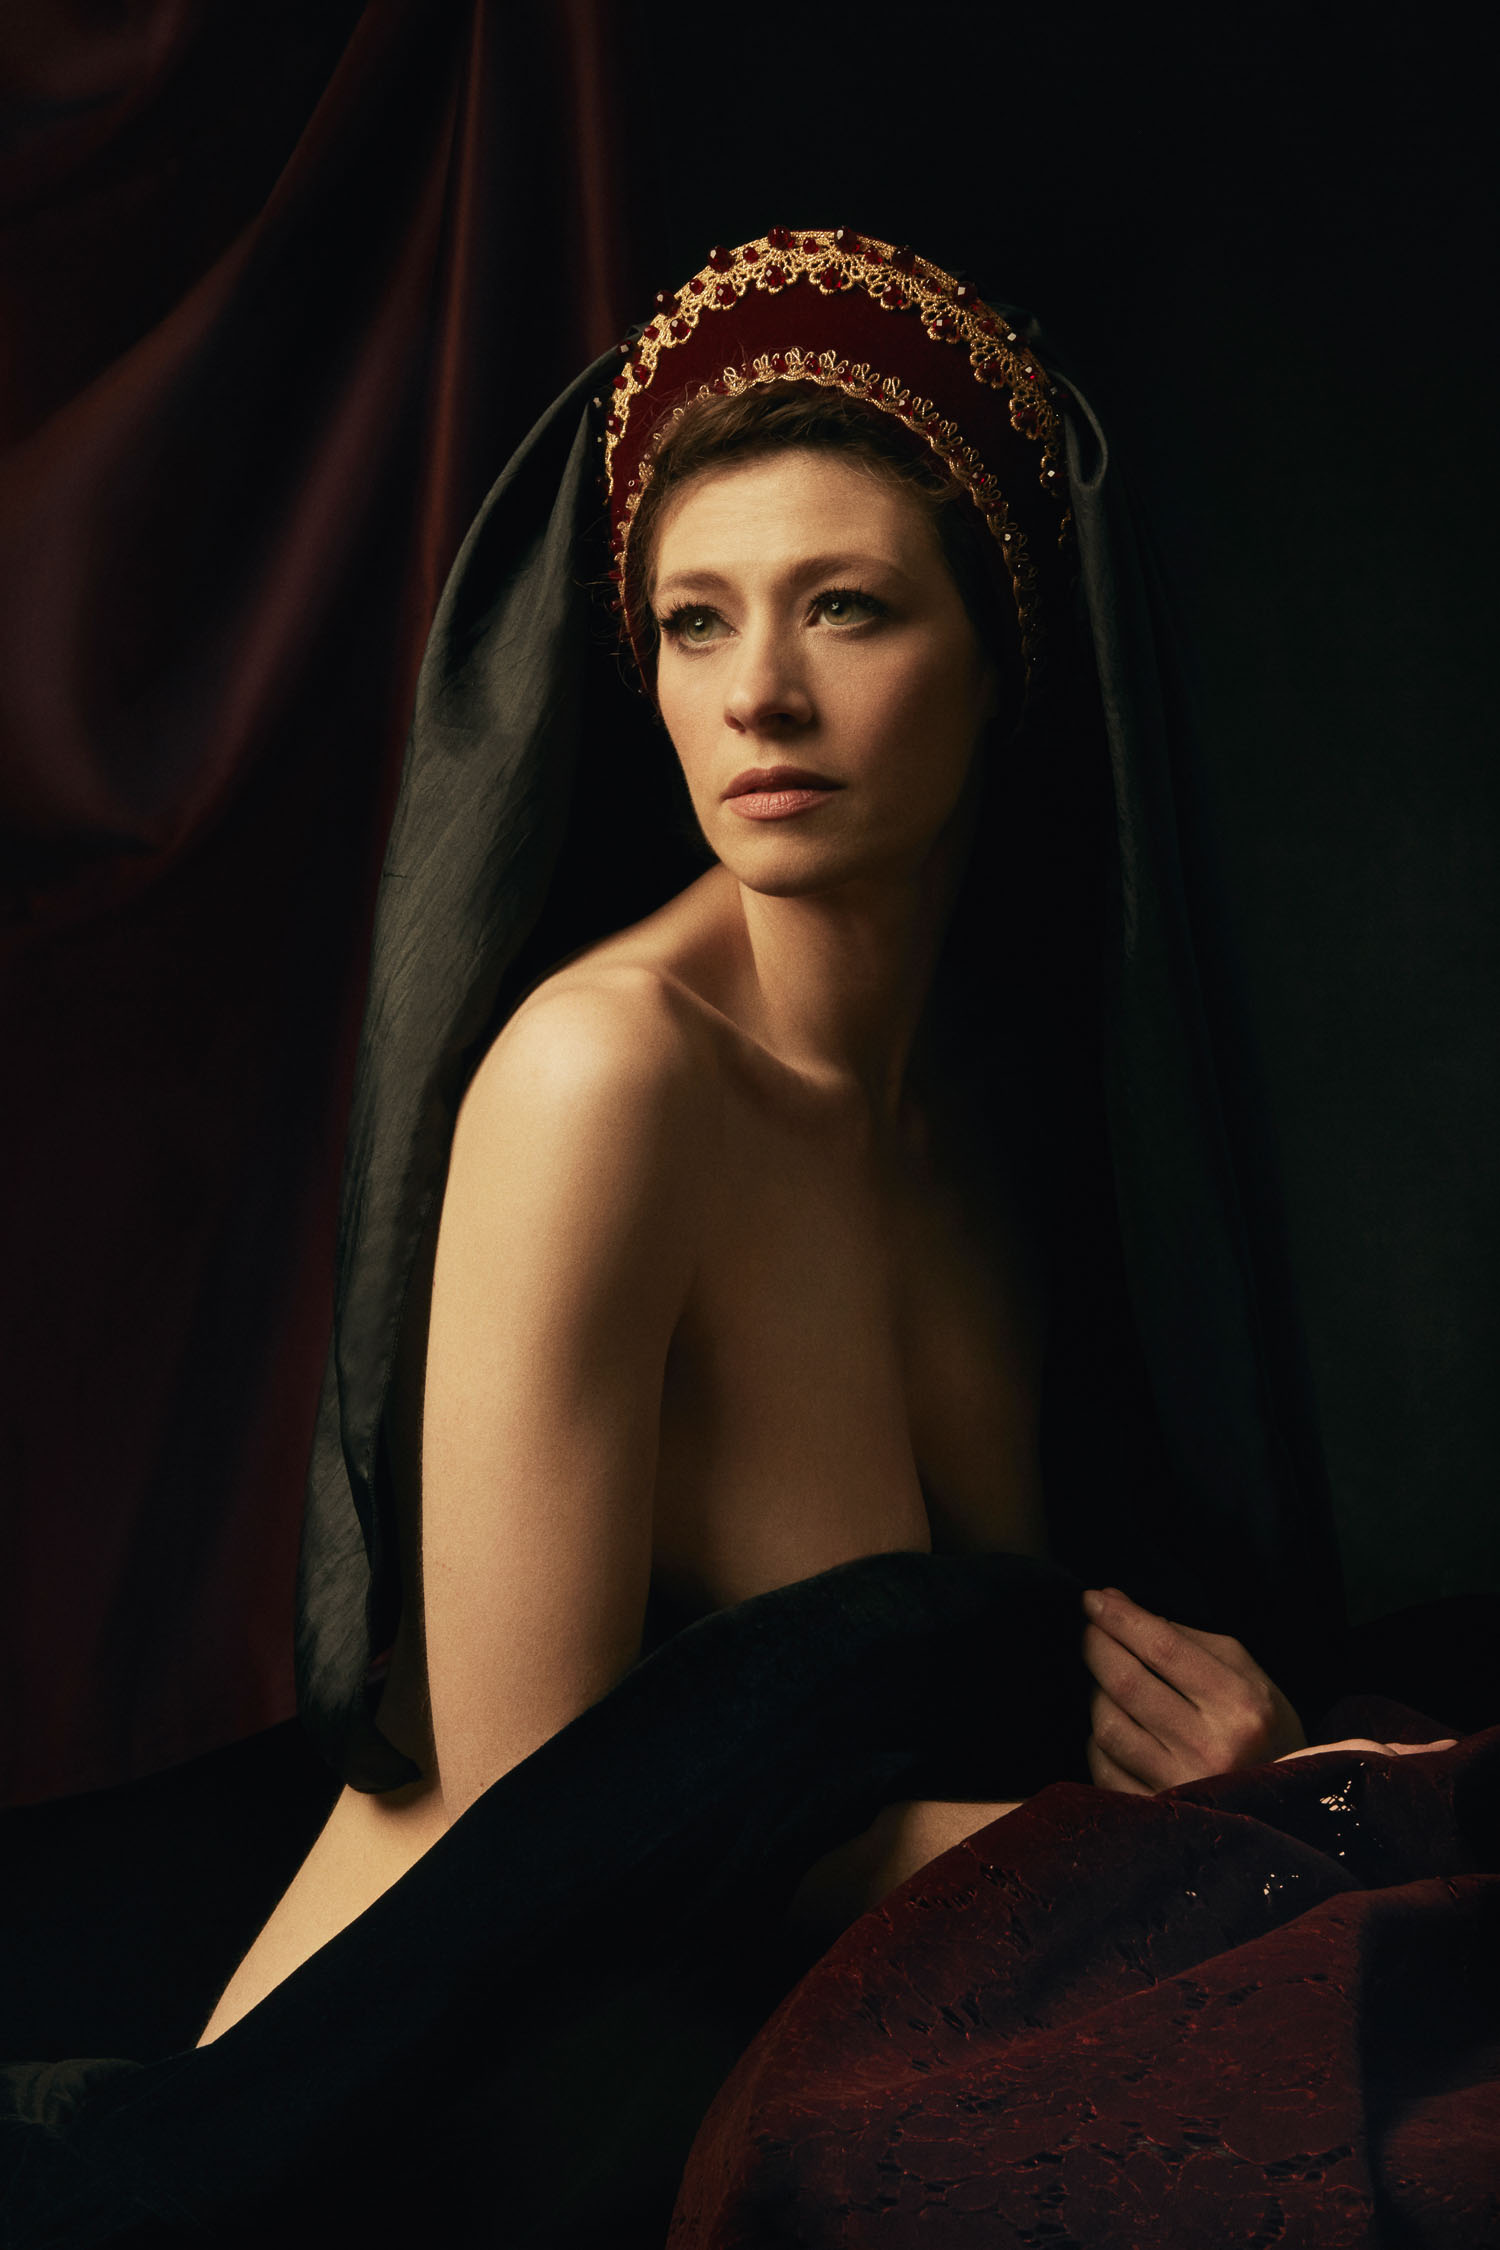 Renaissance inspired boudoir photography by Thuy Vo